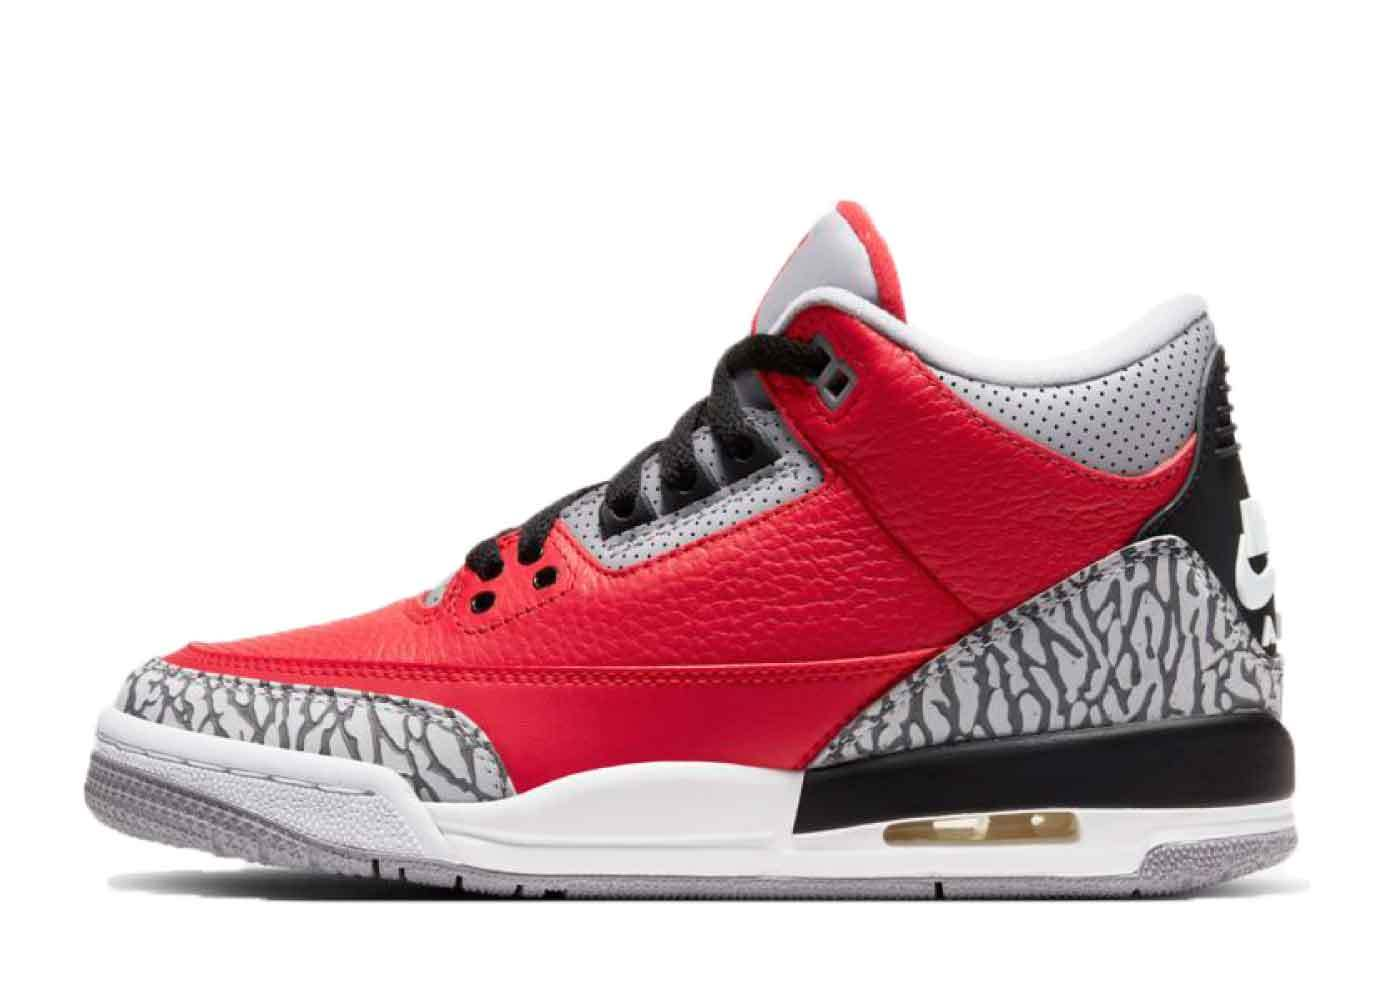 Nike Air Jordan 3 Retro Red Cement (GS)の写真